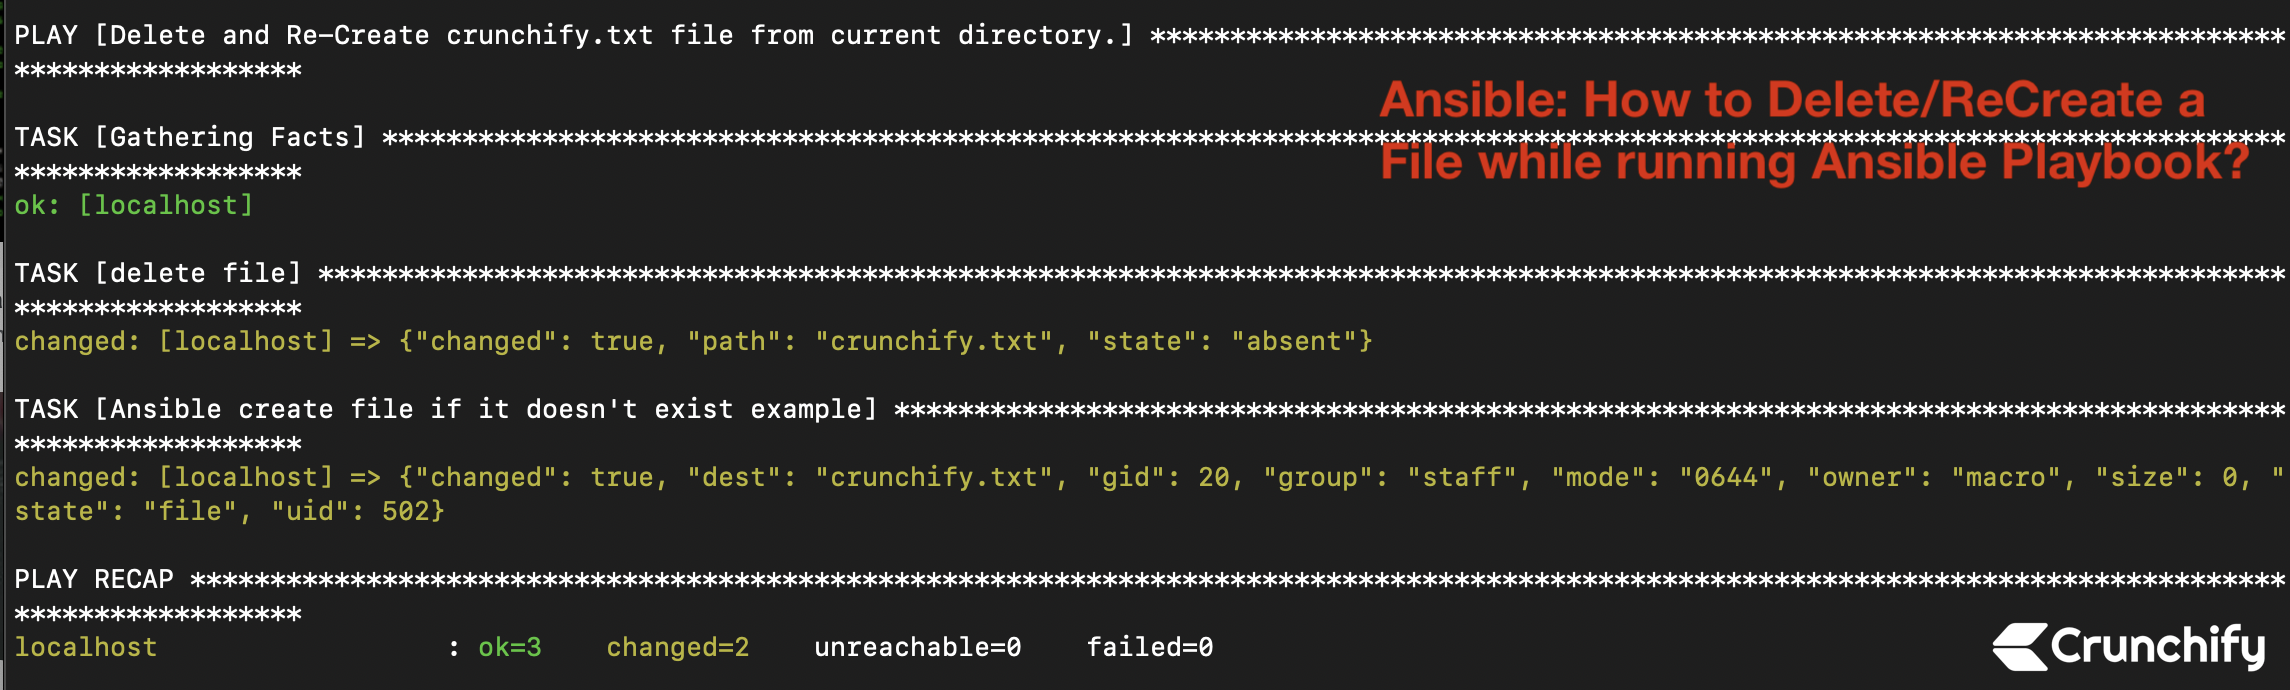 How to Delete/ReCreate a File while running Ansible Playbook?